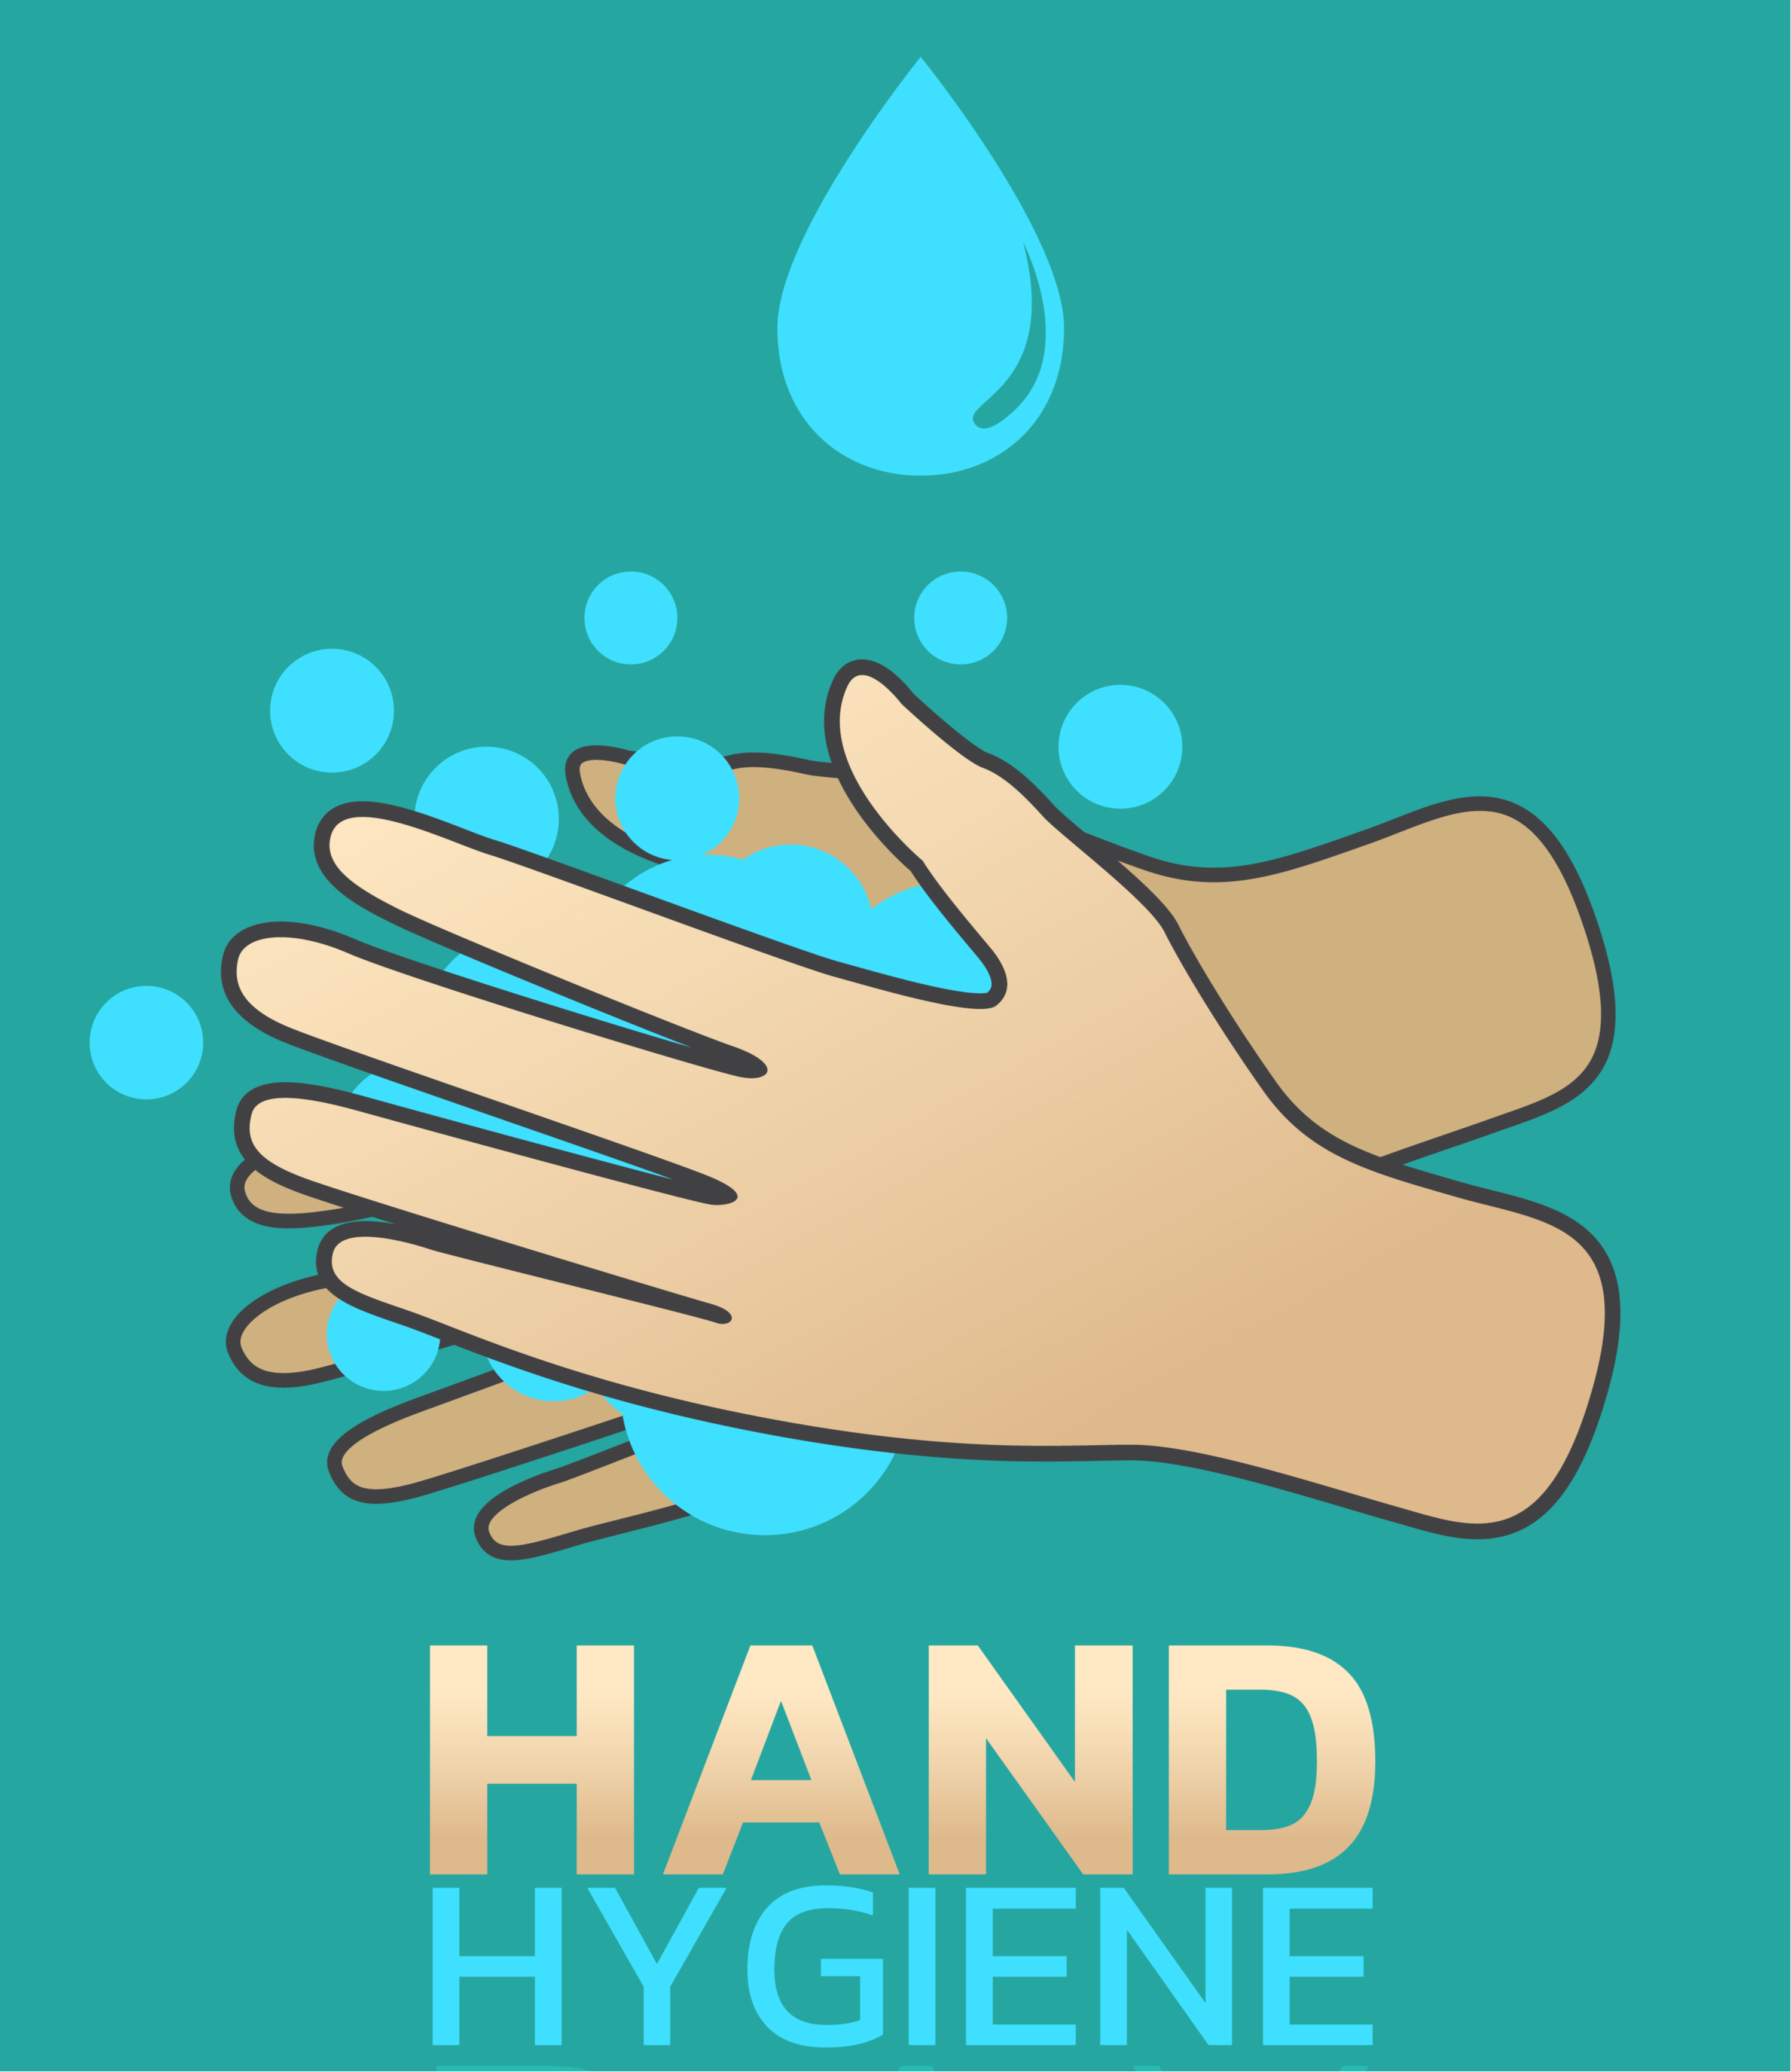 Infection control: Hand hygiene image